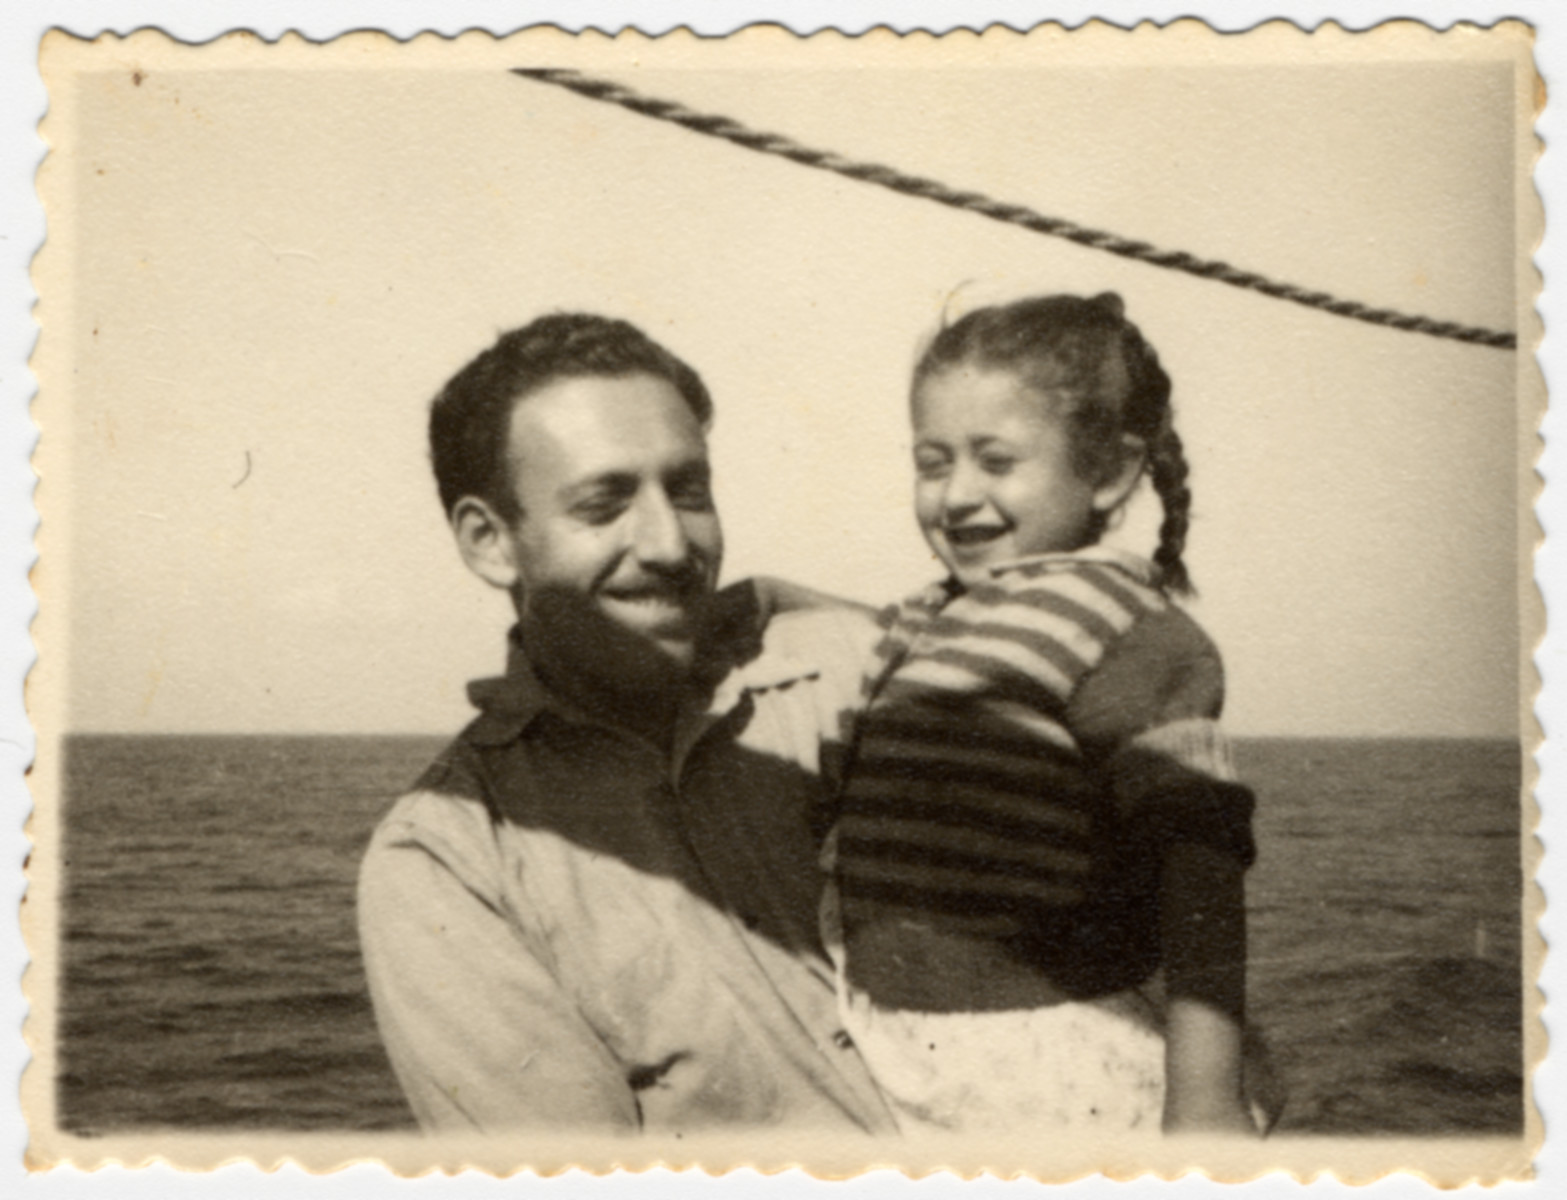 Teddy Rosenfeld (Vardi), a crew member of the Atzmaut (Pan Crescent) holds a young passenger in his arms.  Teddy Vardi had helped liberate Nordhausen as a soldier in the U.S. Army before joining the crew of the Exodus and later the Pan Crescent.